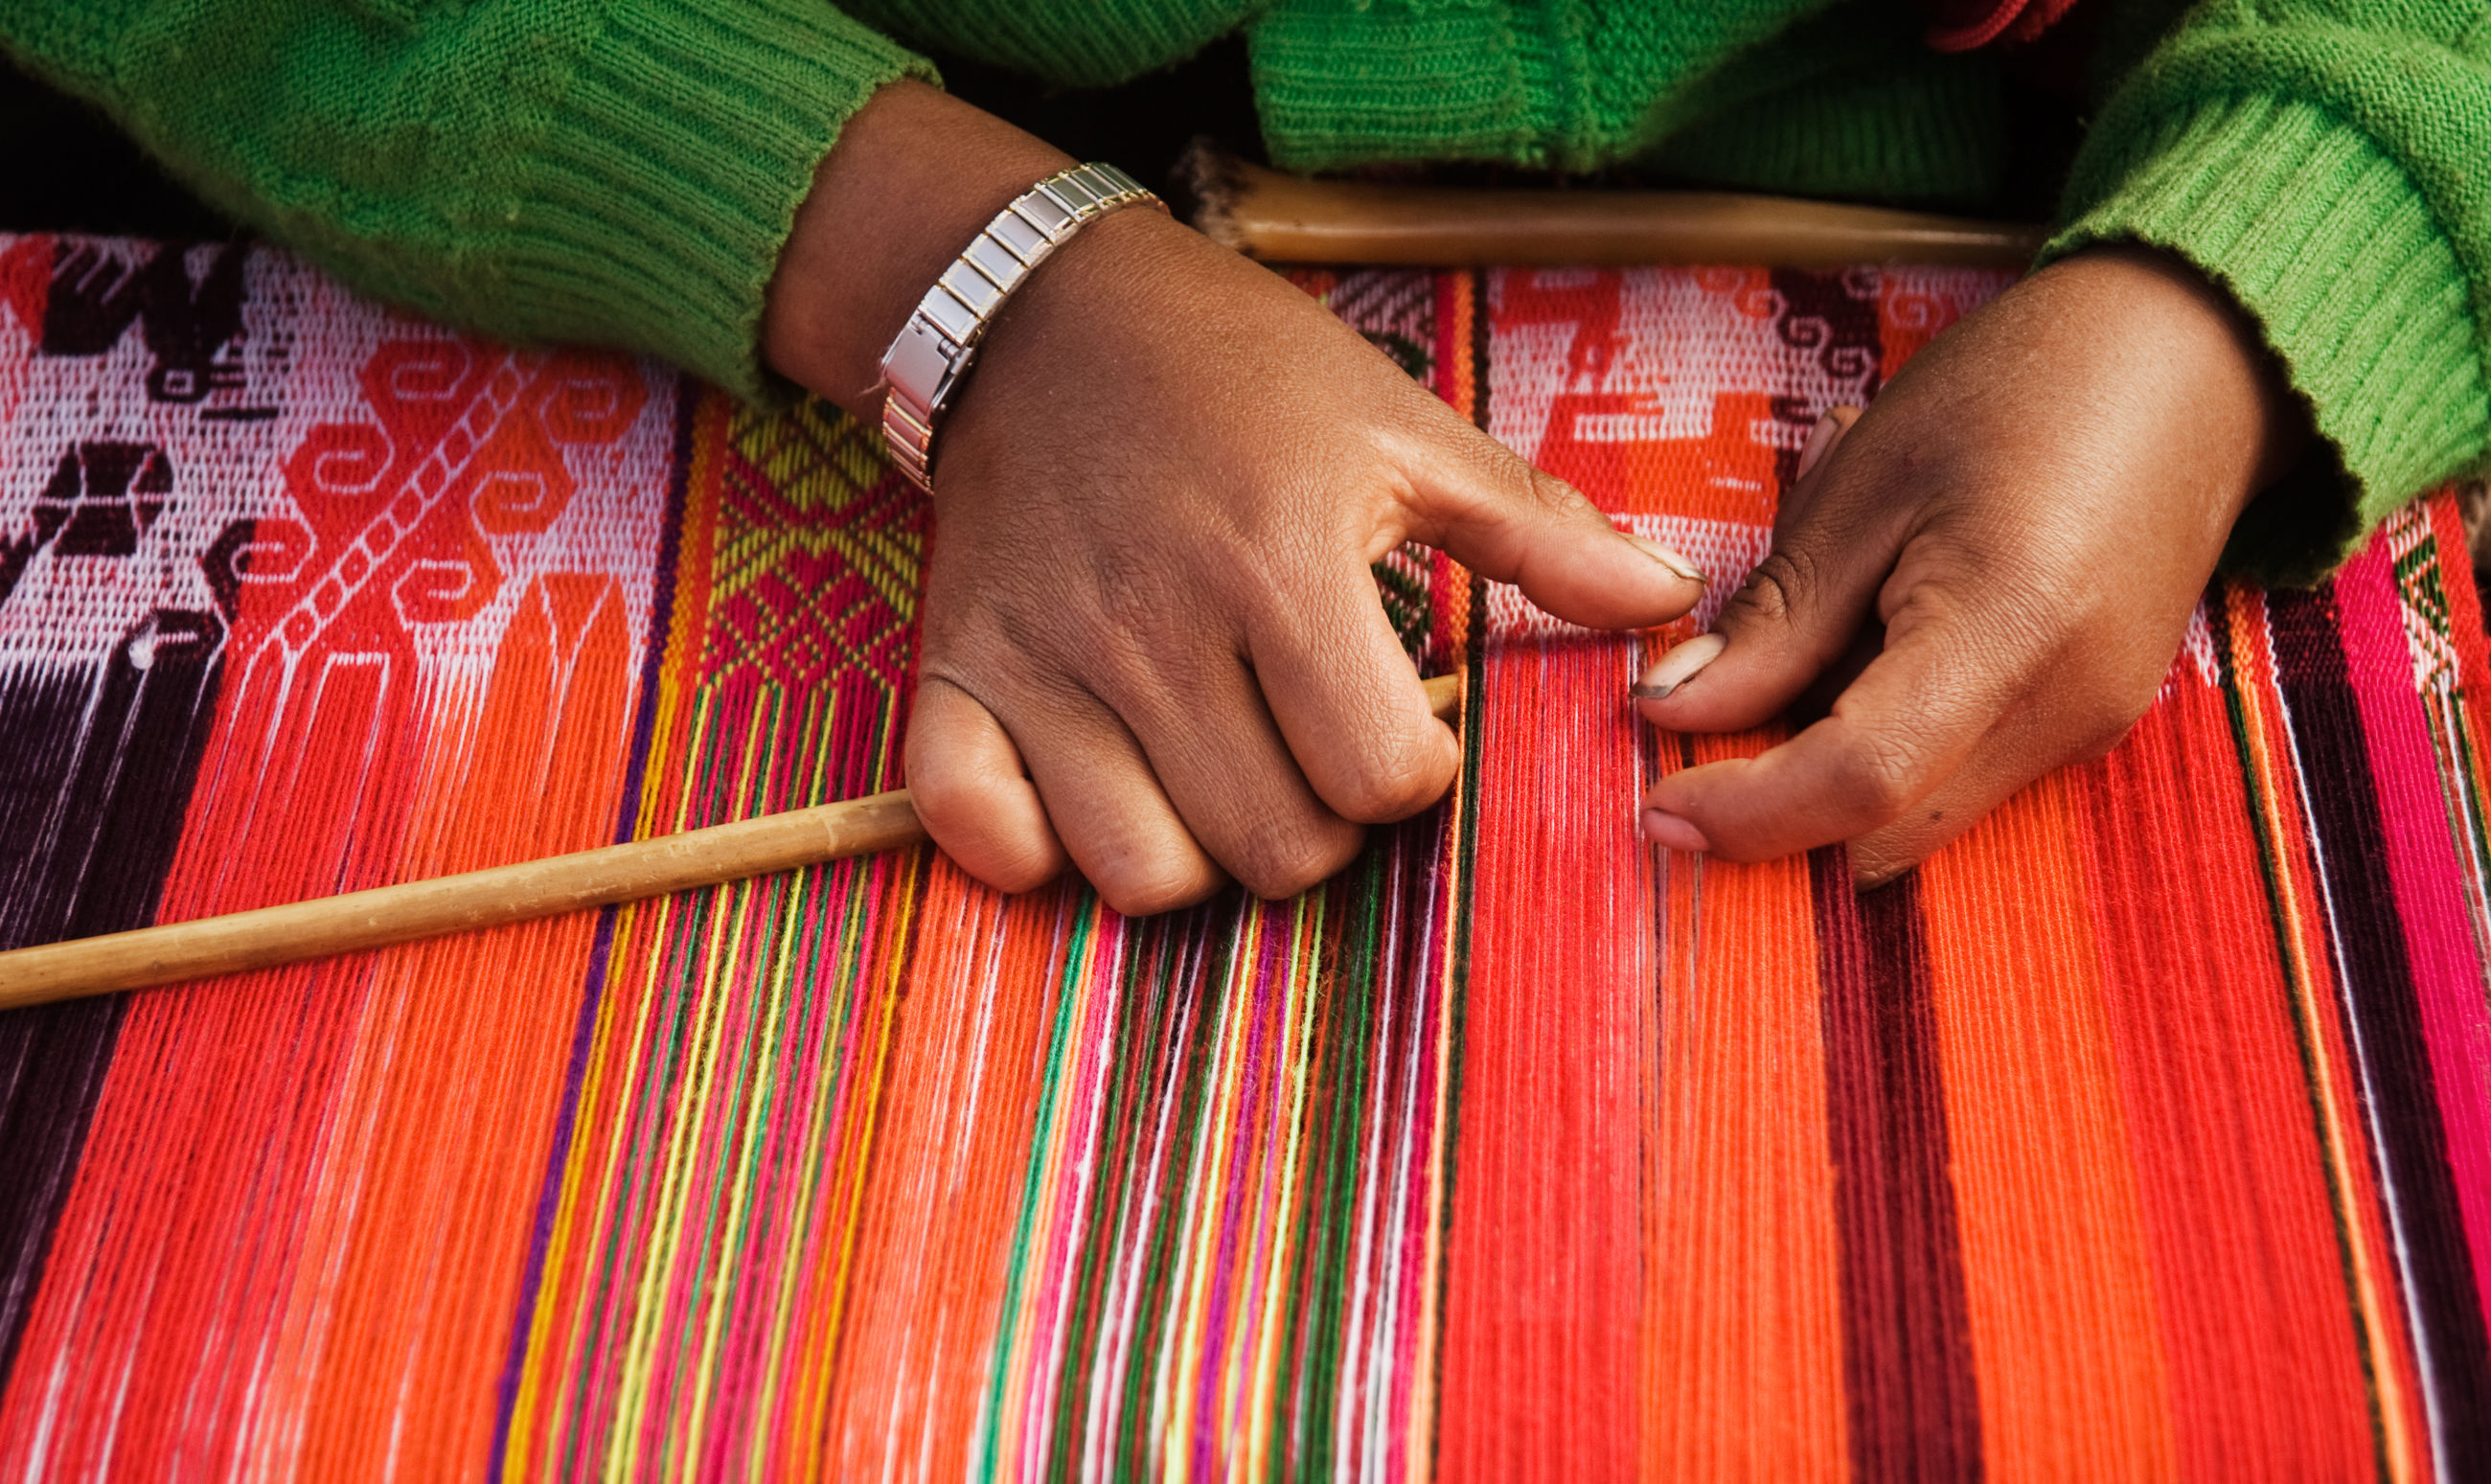 Midsection of woman working in traditional clothing